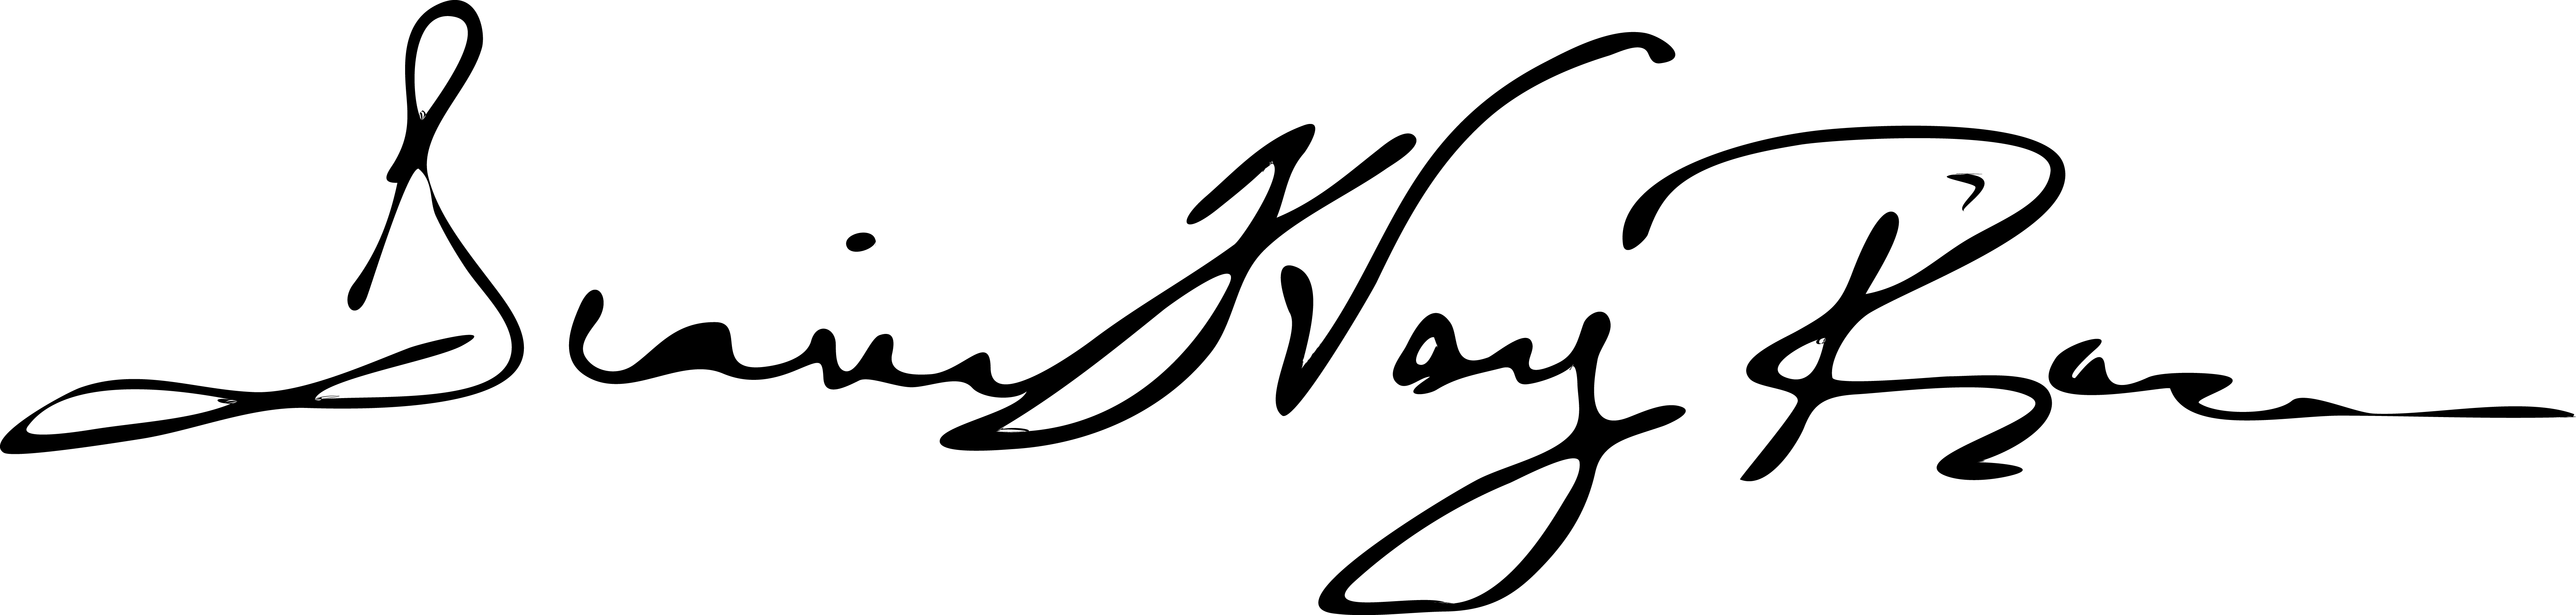 Diane Way Racer's Signature